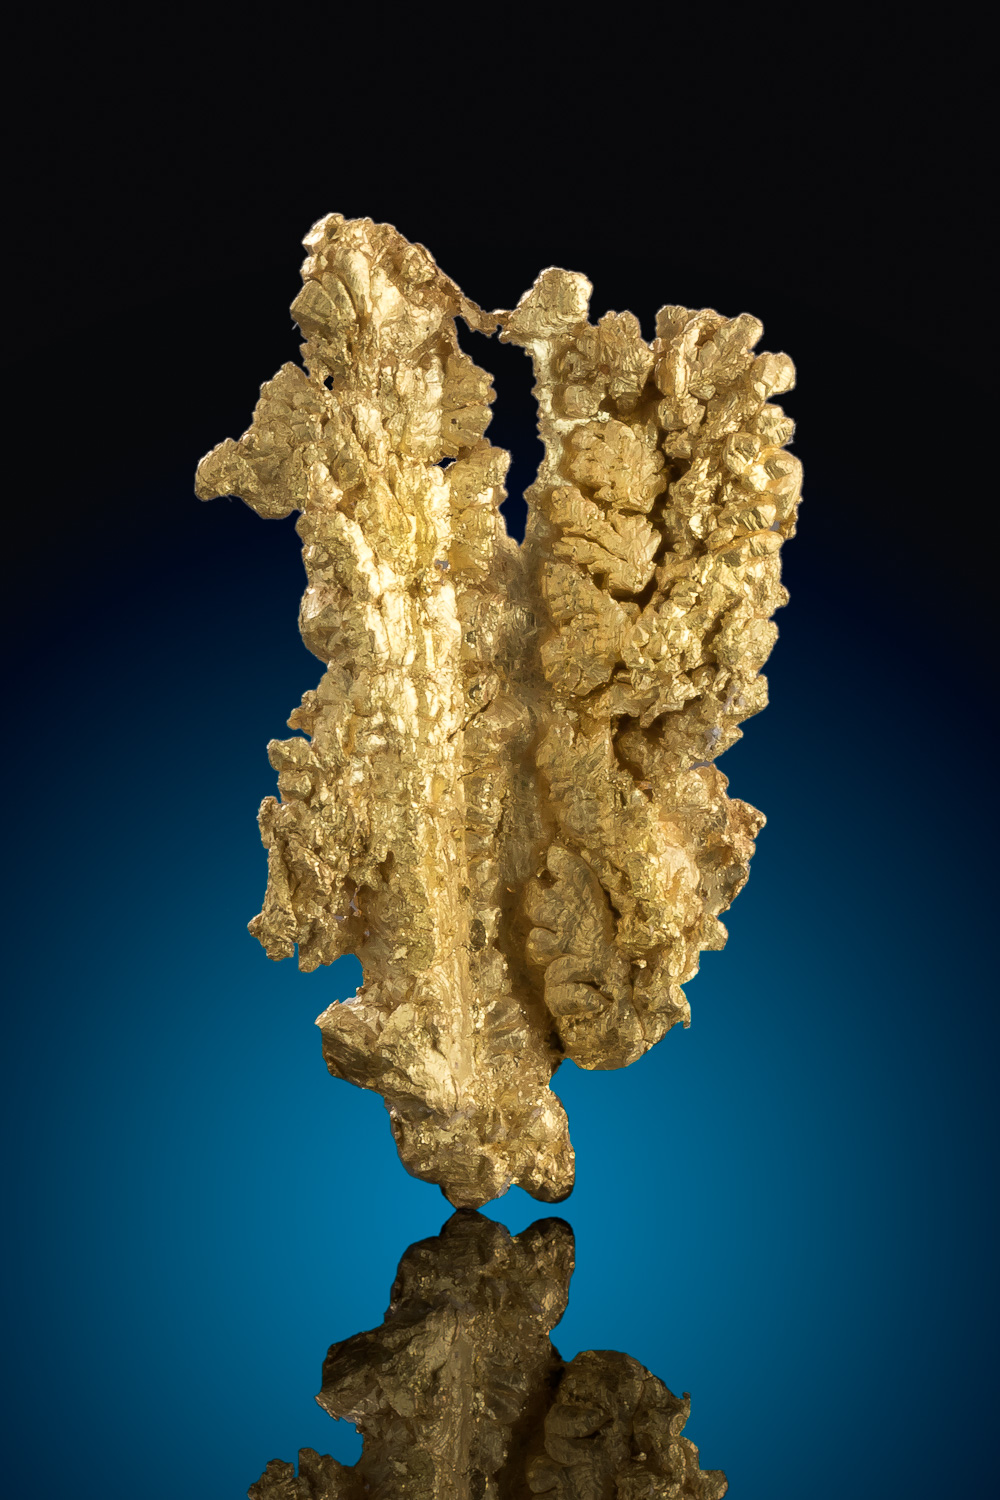 Brilliant Dendritic Form - Gold Crystal from Mariposa County